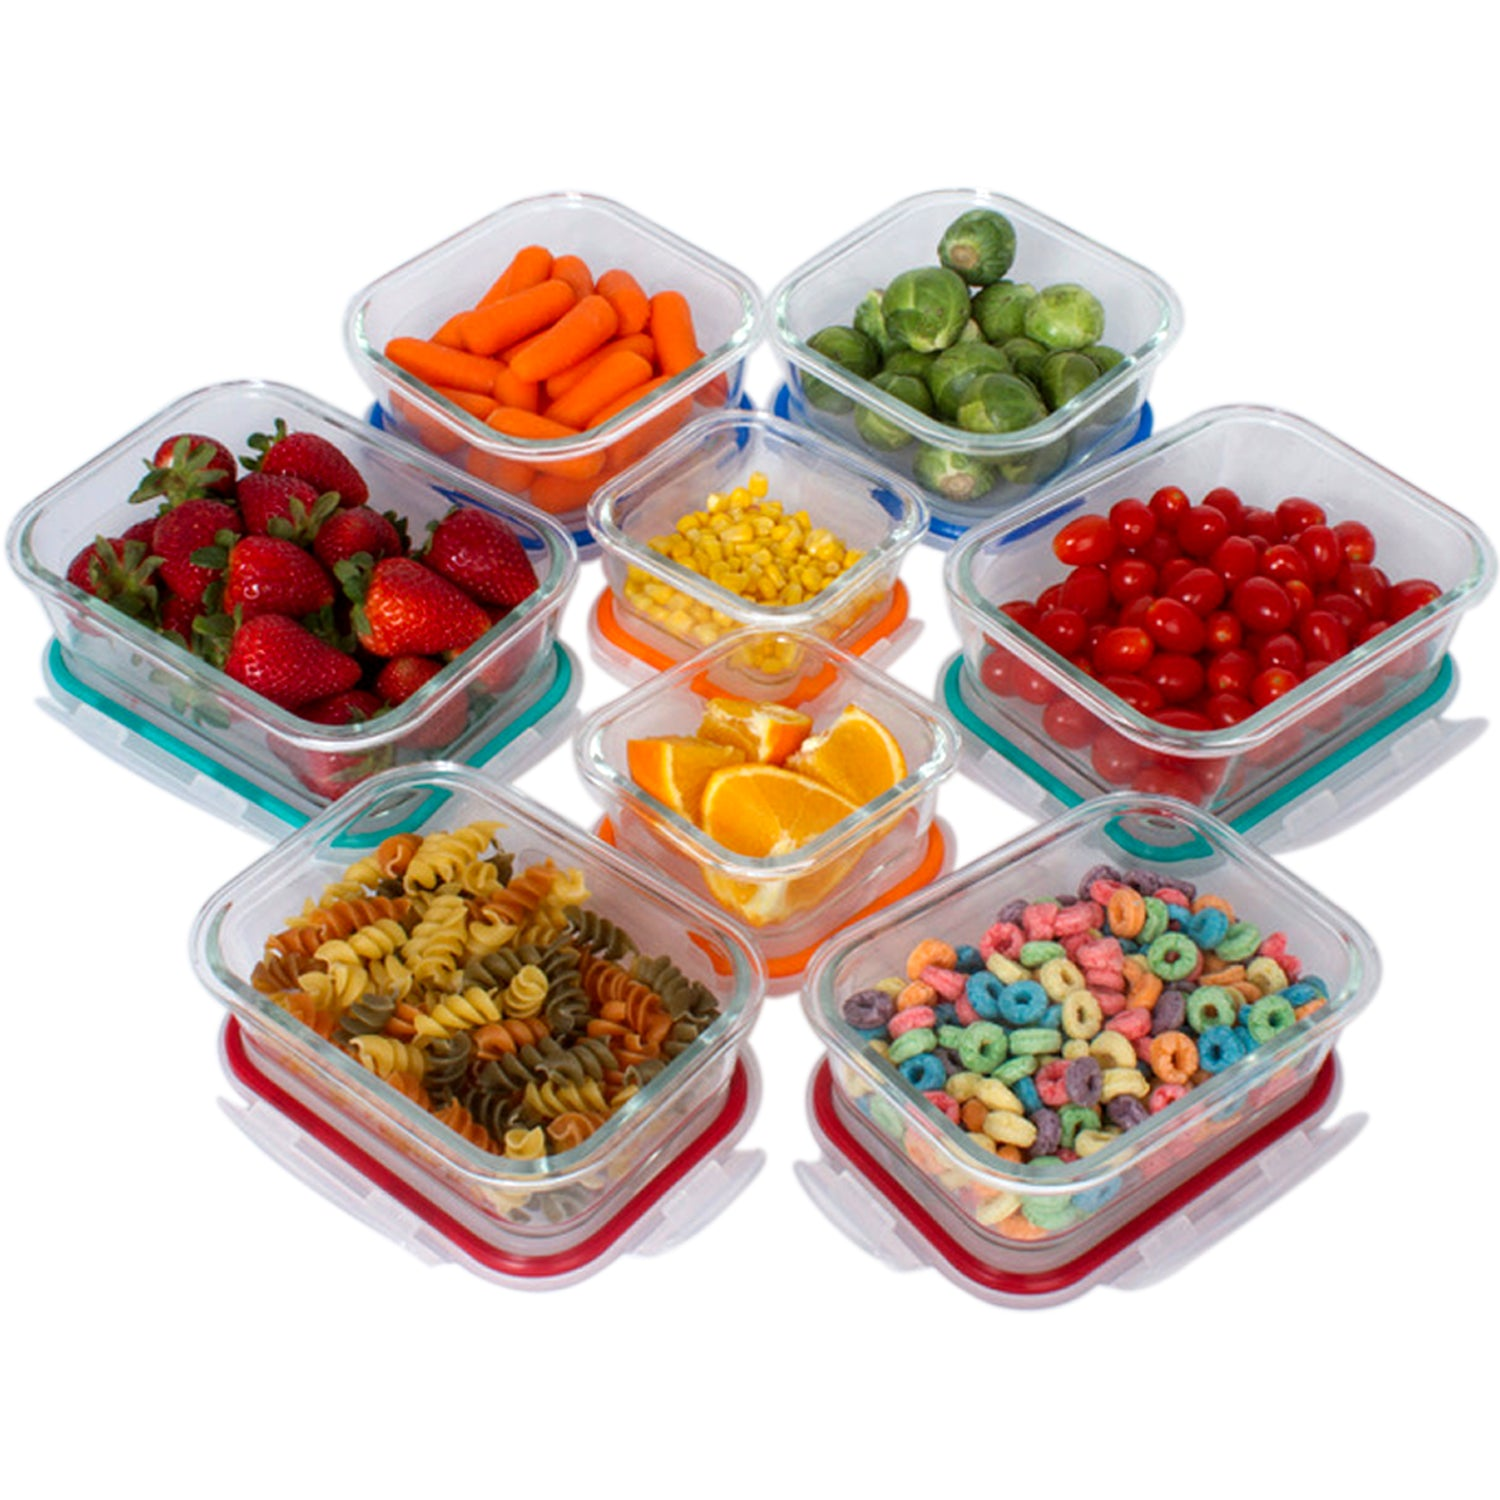 16 Pcs Set Glass Storage Containers with Lids/Glass Food Storage Containers Airtight/Glass Containers With Lids - Glass Meal Prep Containers Glass Food Containers - Glass Lunch Container